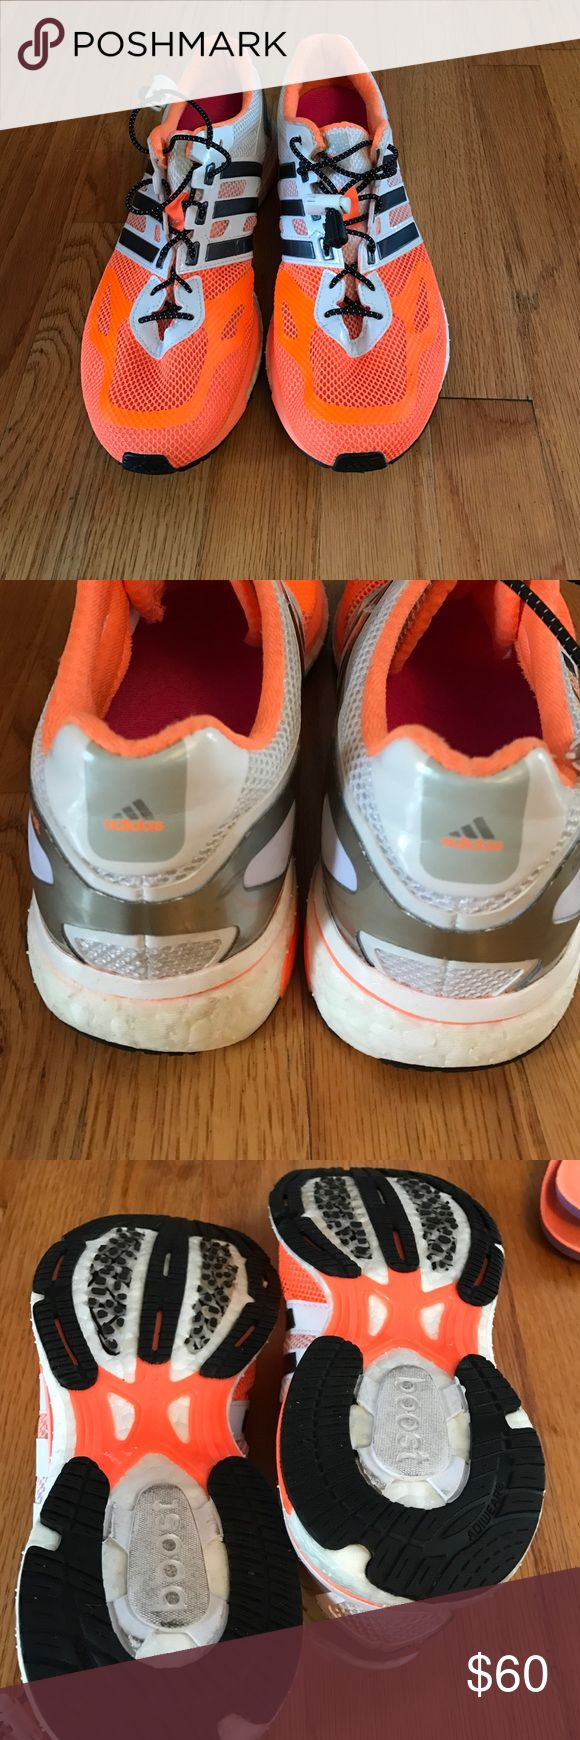 Adidas Boost running shoes size 9 Very good condition. Worn only twice Adidas Shoes Sneakers